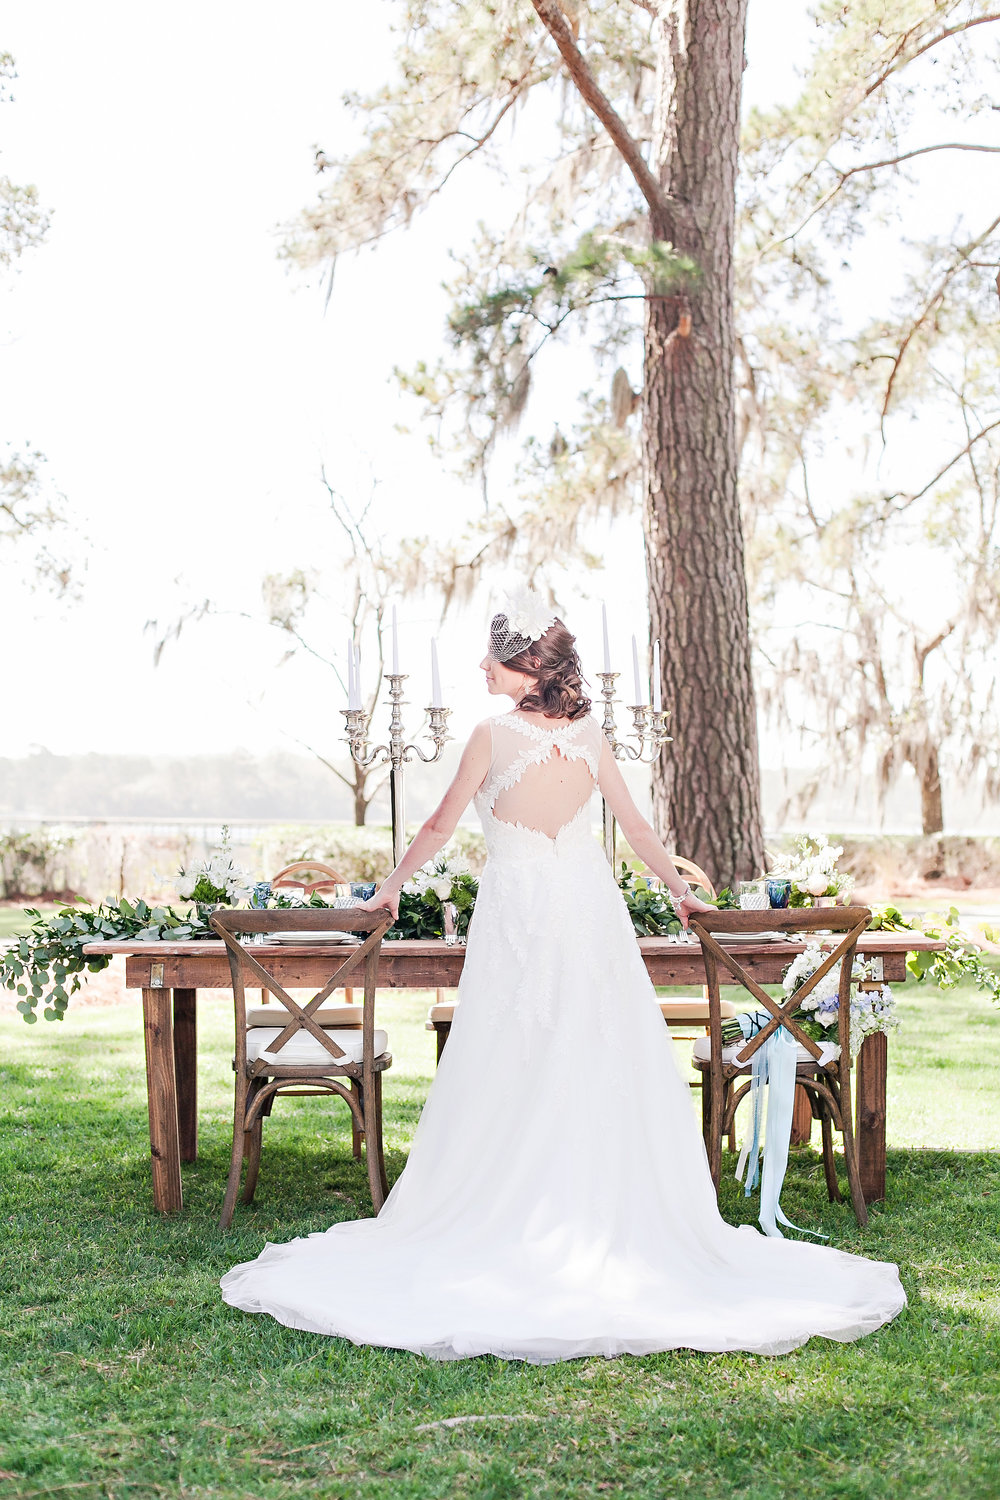 heather-kline-photography-oldfield-river-club-wedding-savannah-wedding-photographer-ti-adora-ivory-and-beau-bridal-boutique-savannah-wedding-dresses-savannah-bridal-boutique-savannah-bridal-gowns-bridal-accessories-savannah-wedding-planner-14.jpg